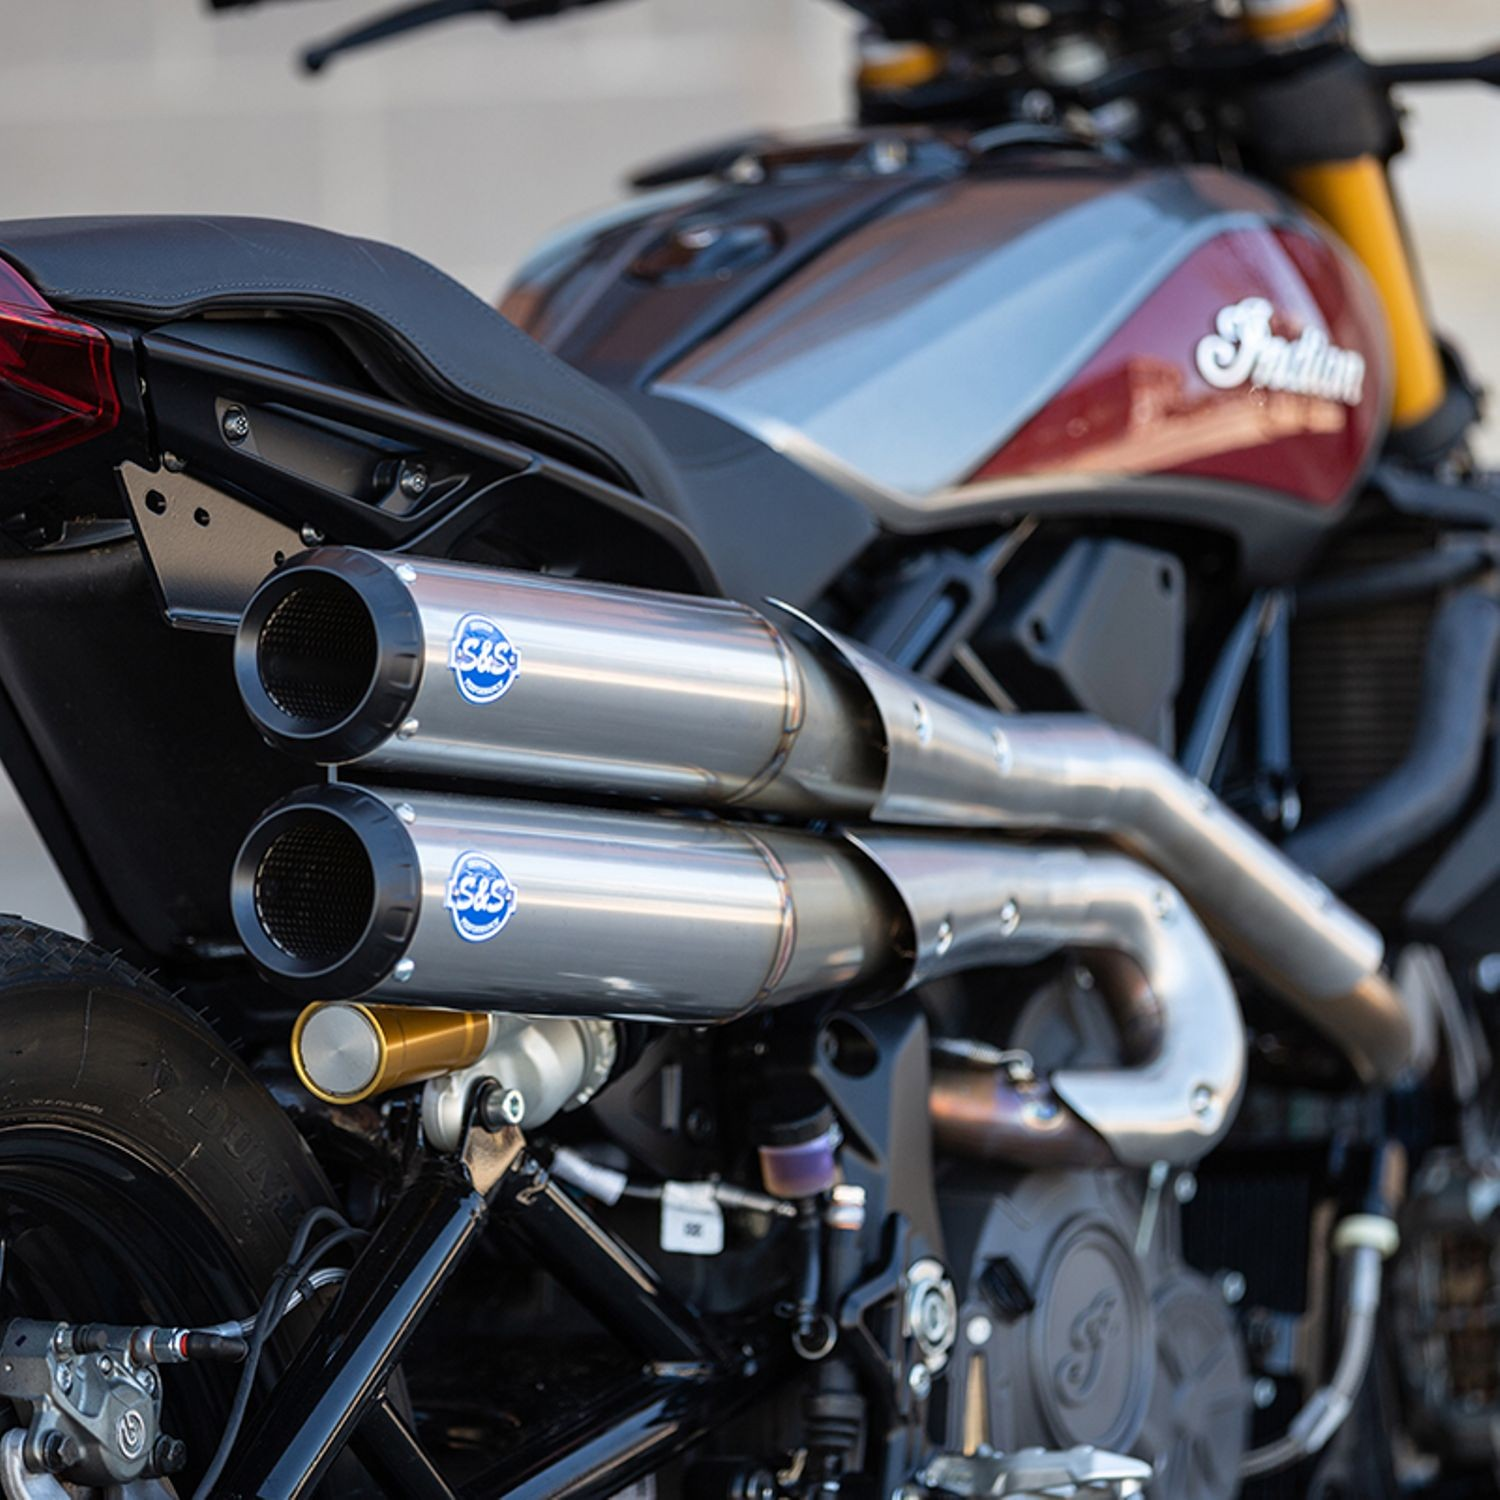 Indian Ftr 1200 >> Grand National 2 2 High For Indian Ftr 1200 50 State